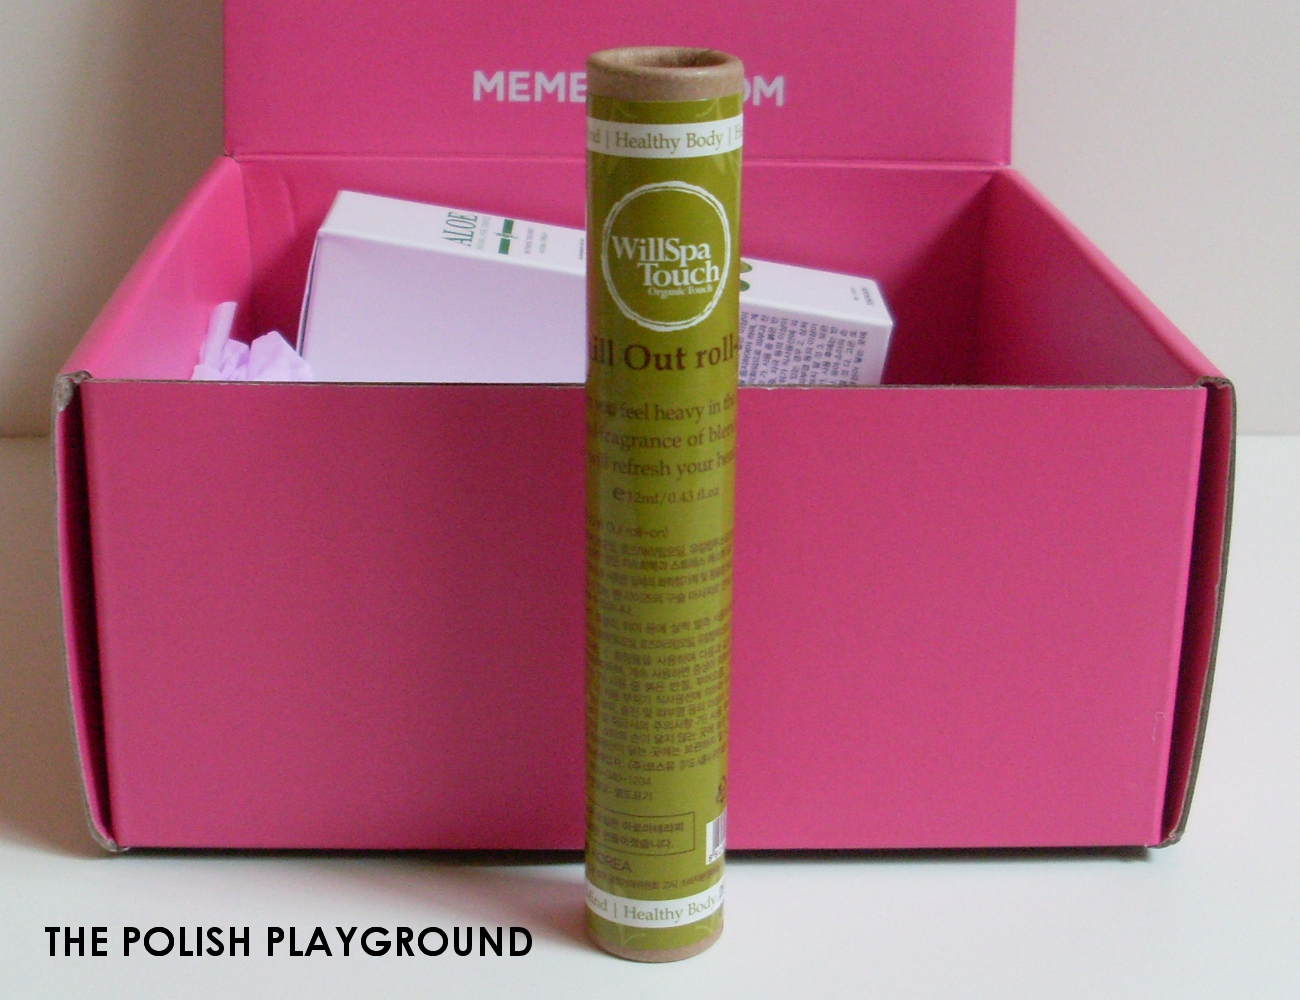 Memebox Special #64 Green Food Cosmetics Unboxing - WillSpa Touch Aroma Therapy Roll-On Oil